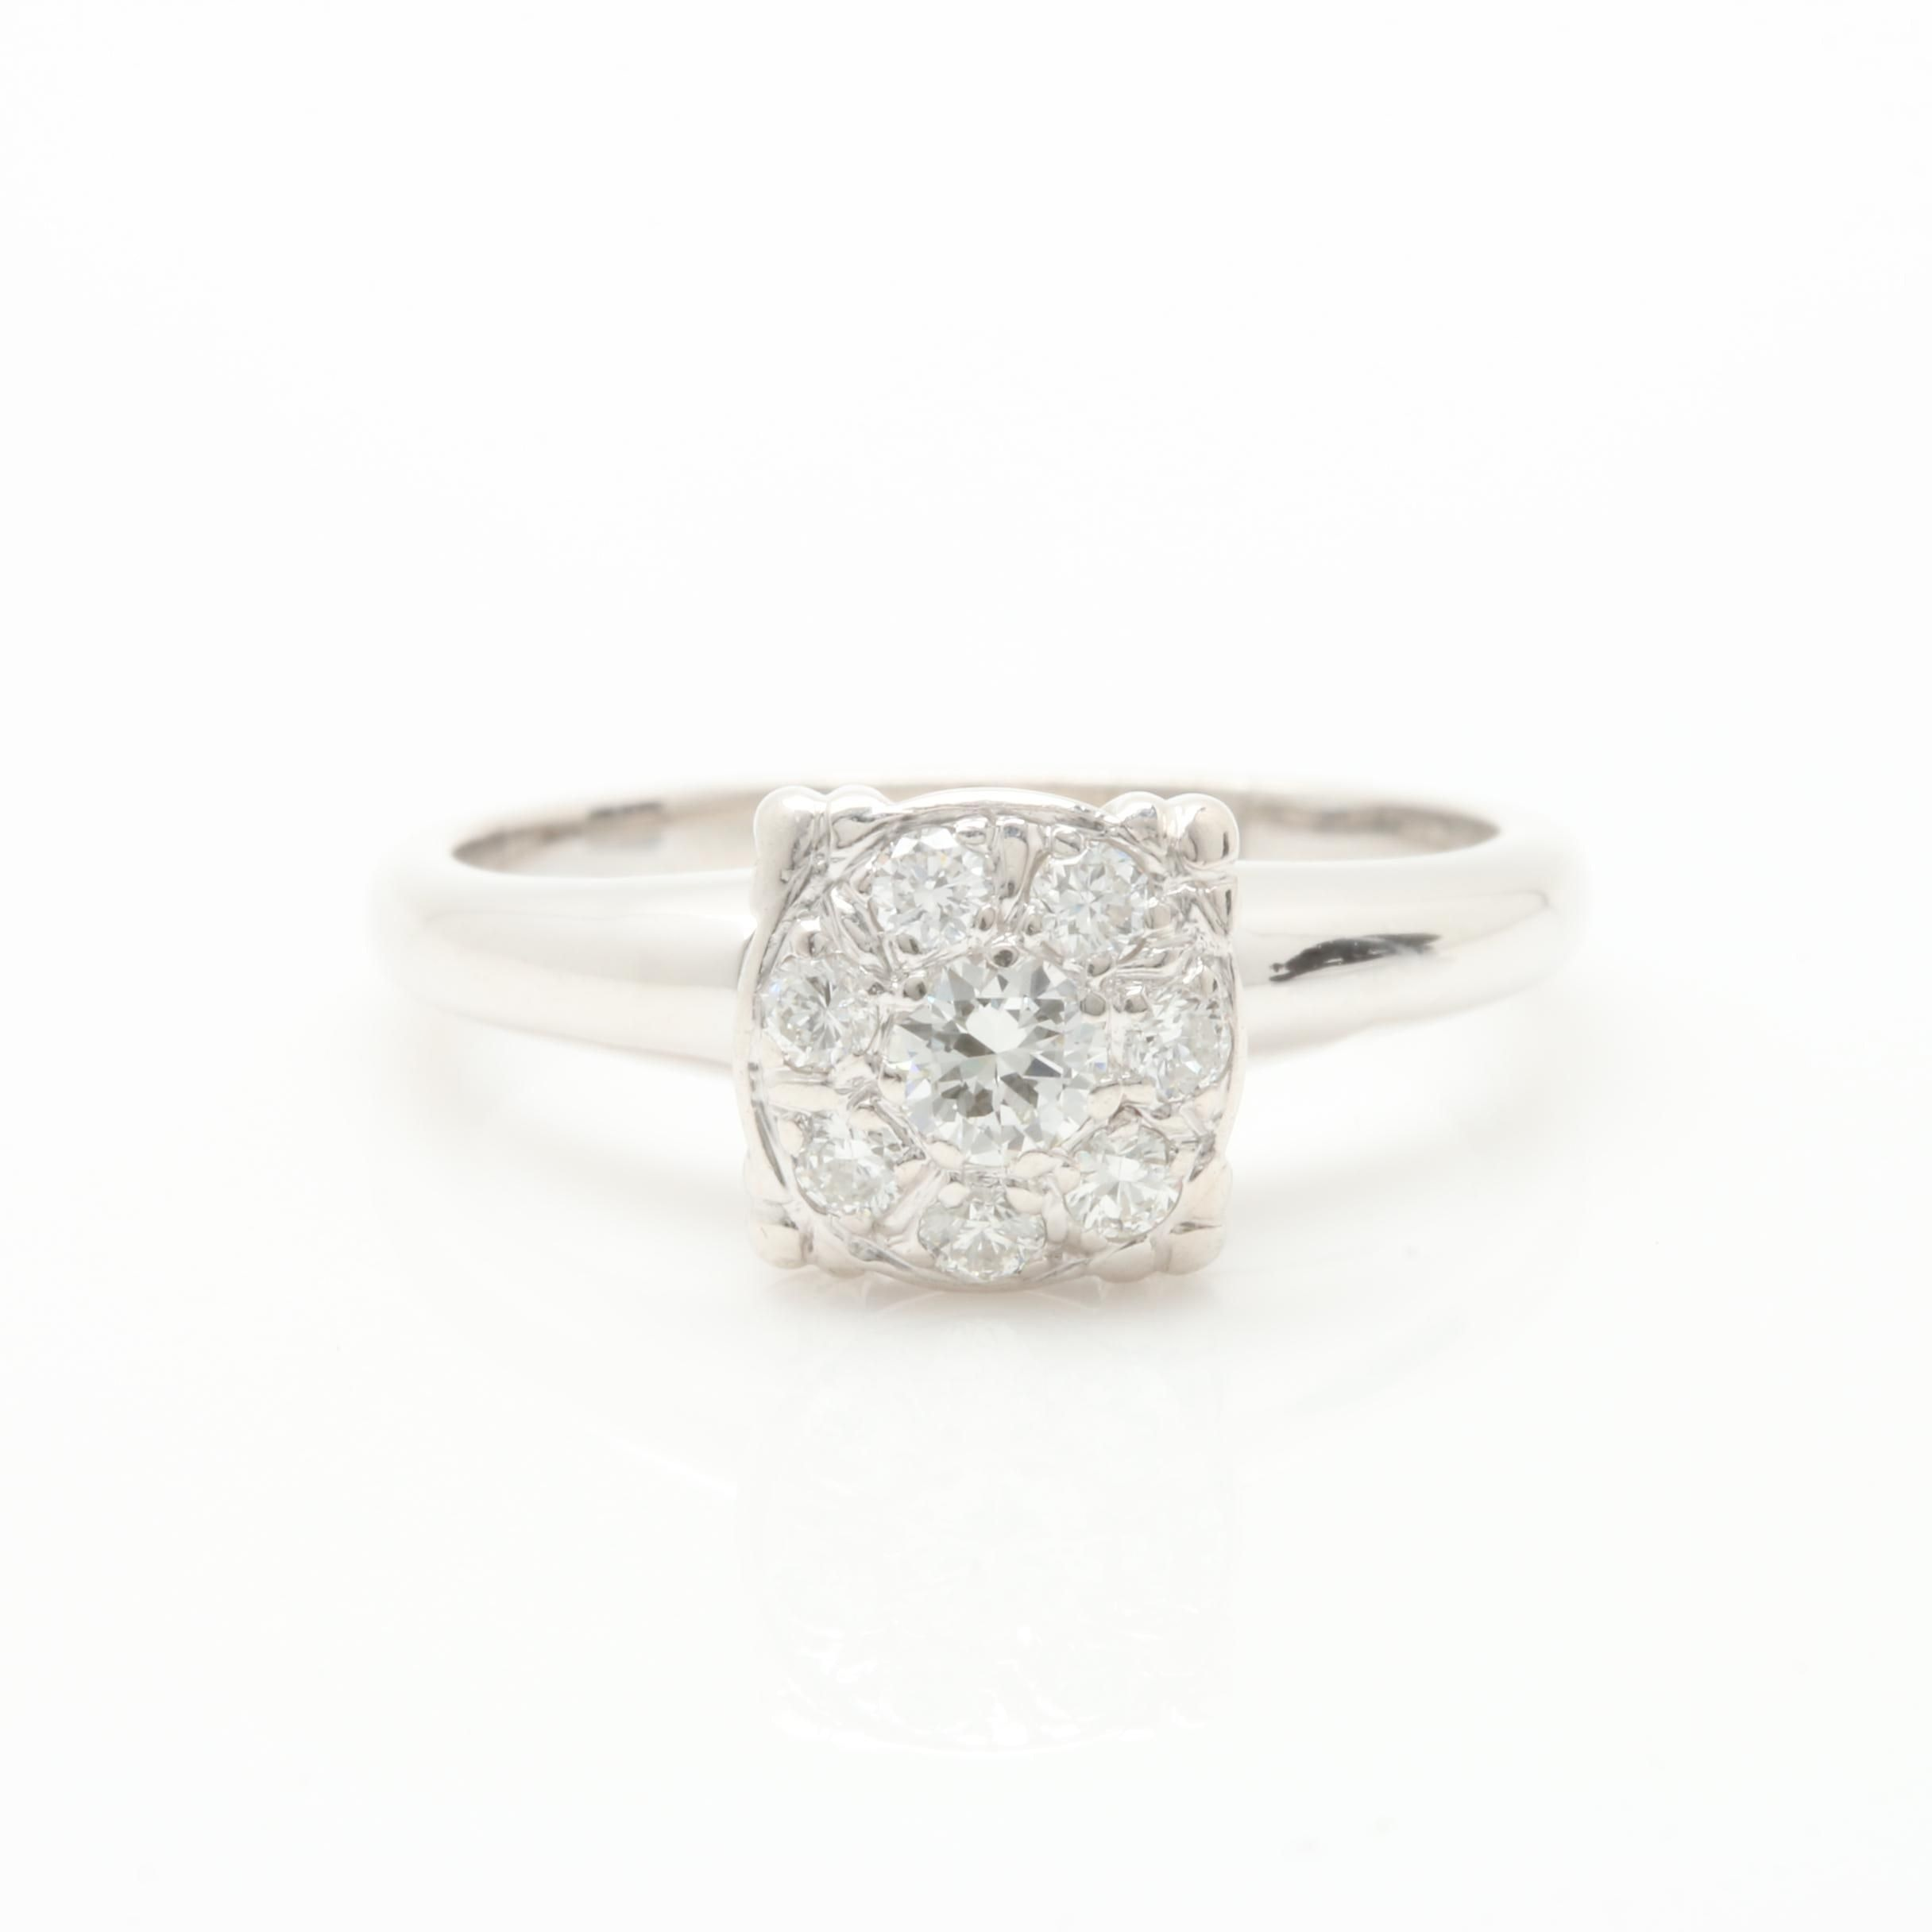 Vintage Platinum Palladium Alloy and 14K White Gold Diamond Ring